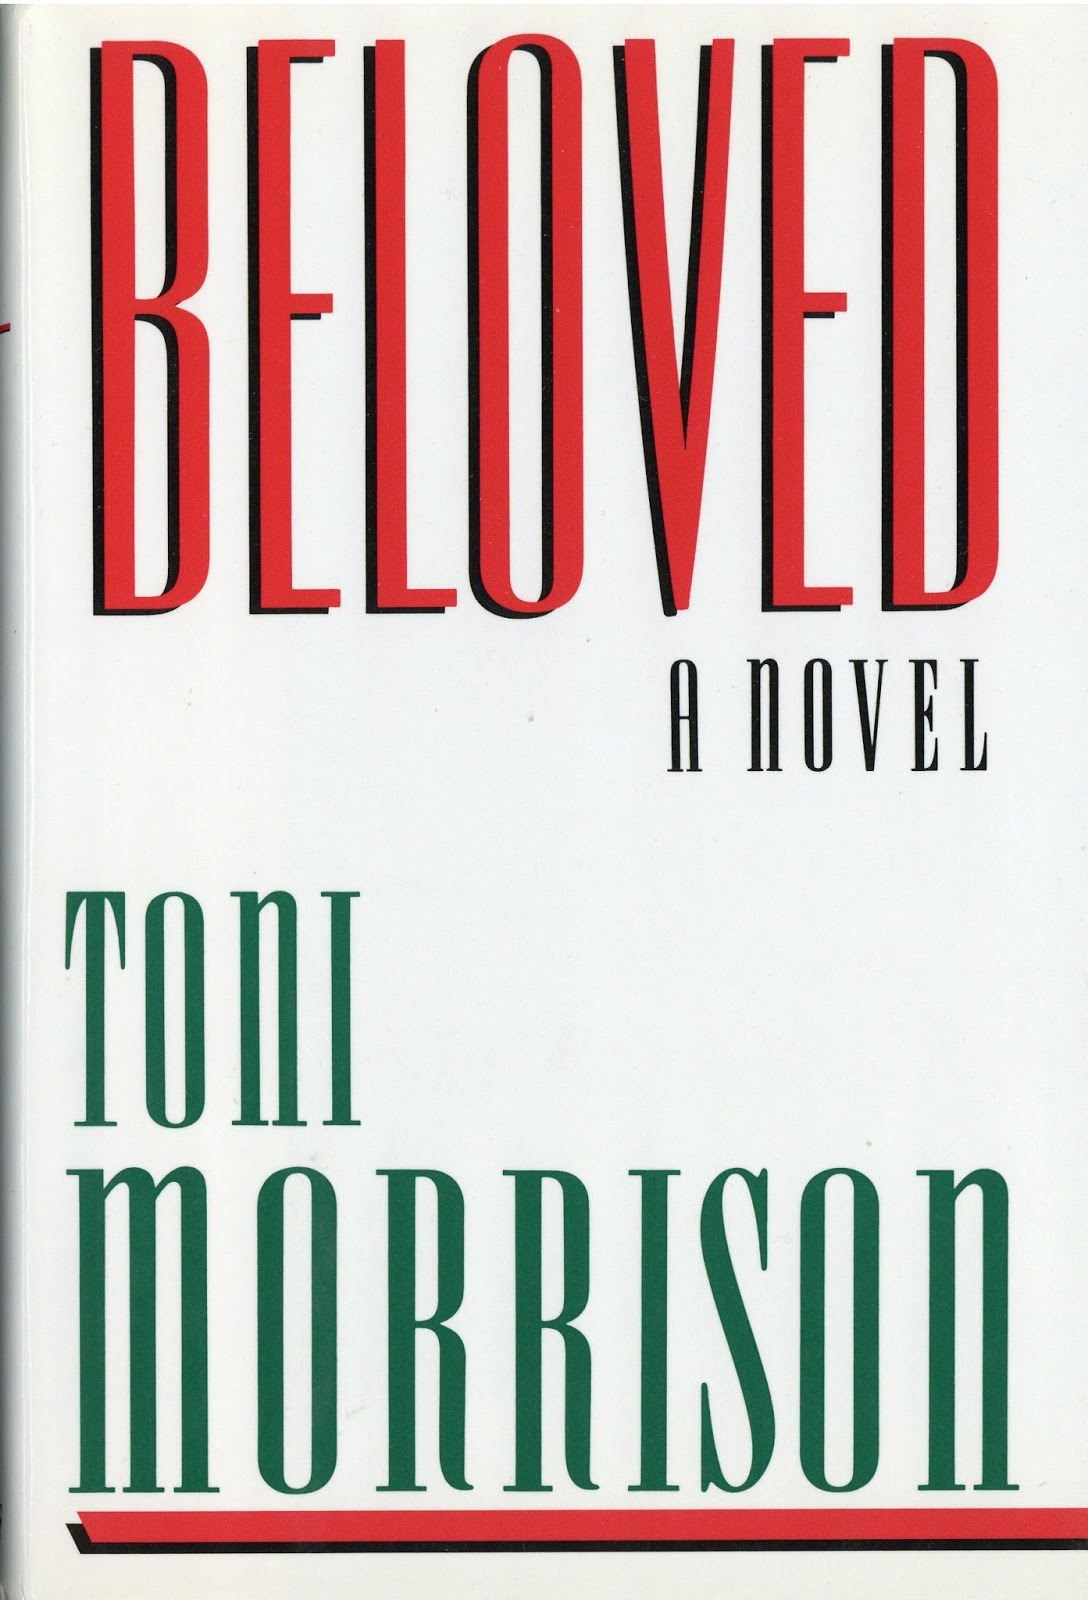 an analysis of the topic of containment in sula novel by toni morrison